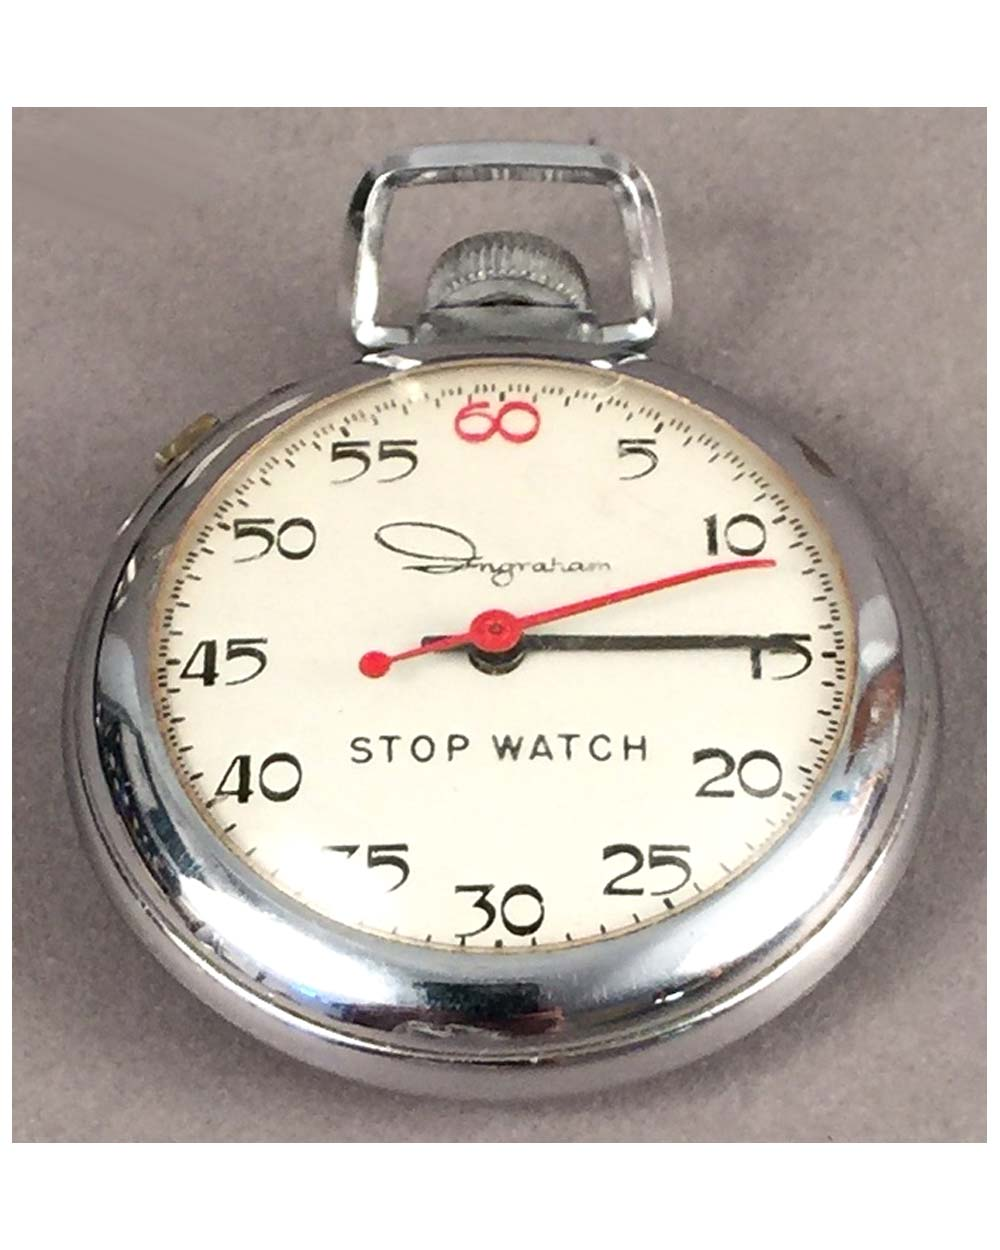 Ingraham Vintage Pocket Stop Watch